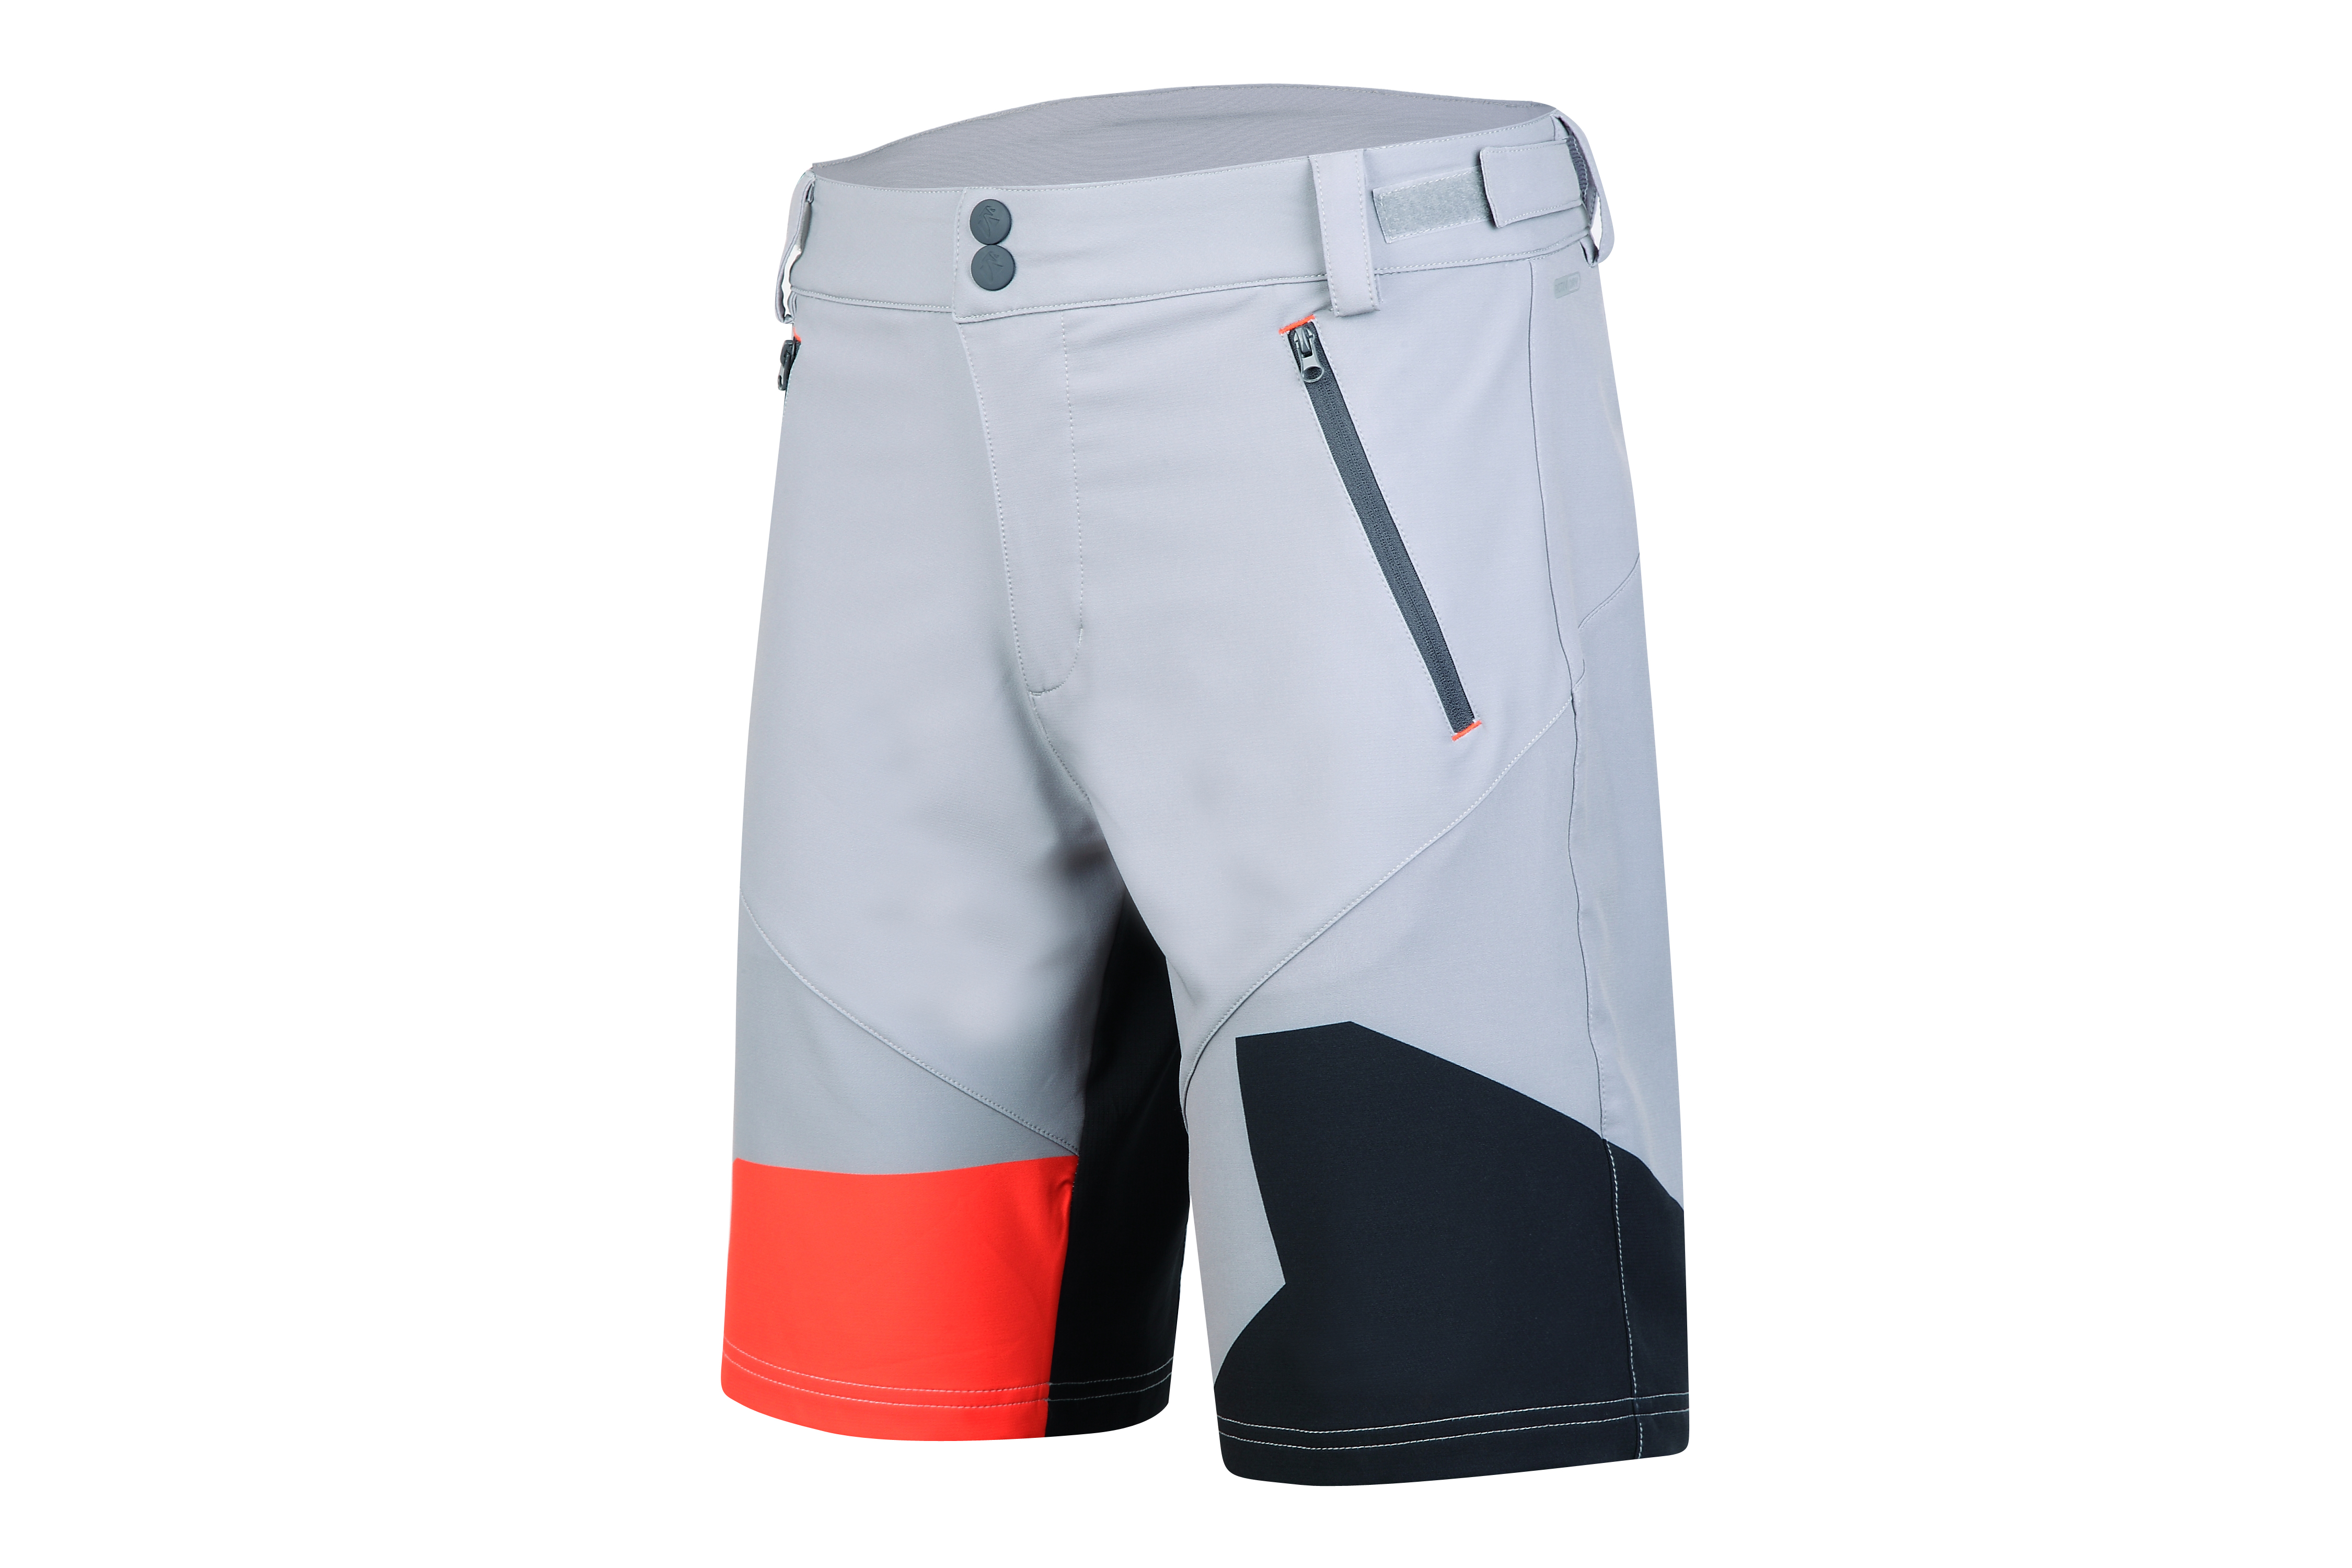 MENS MOUTAIN BIKE SHORTS